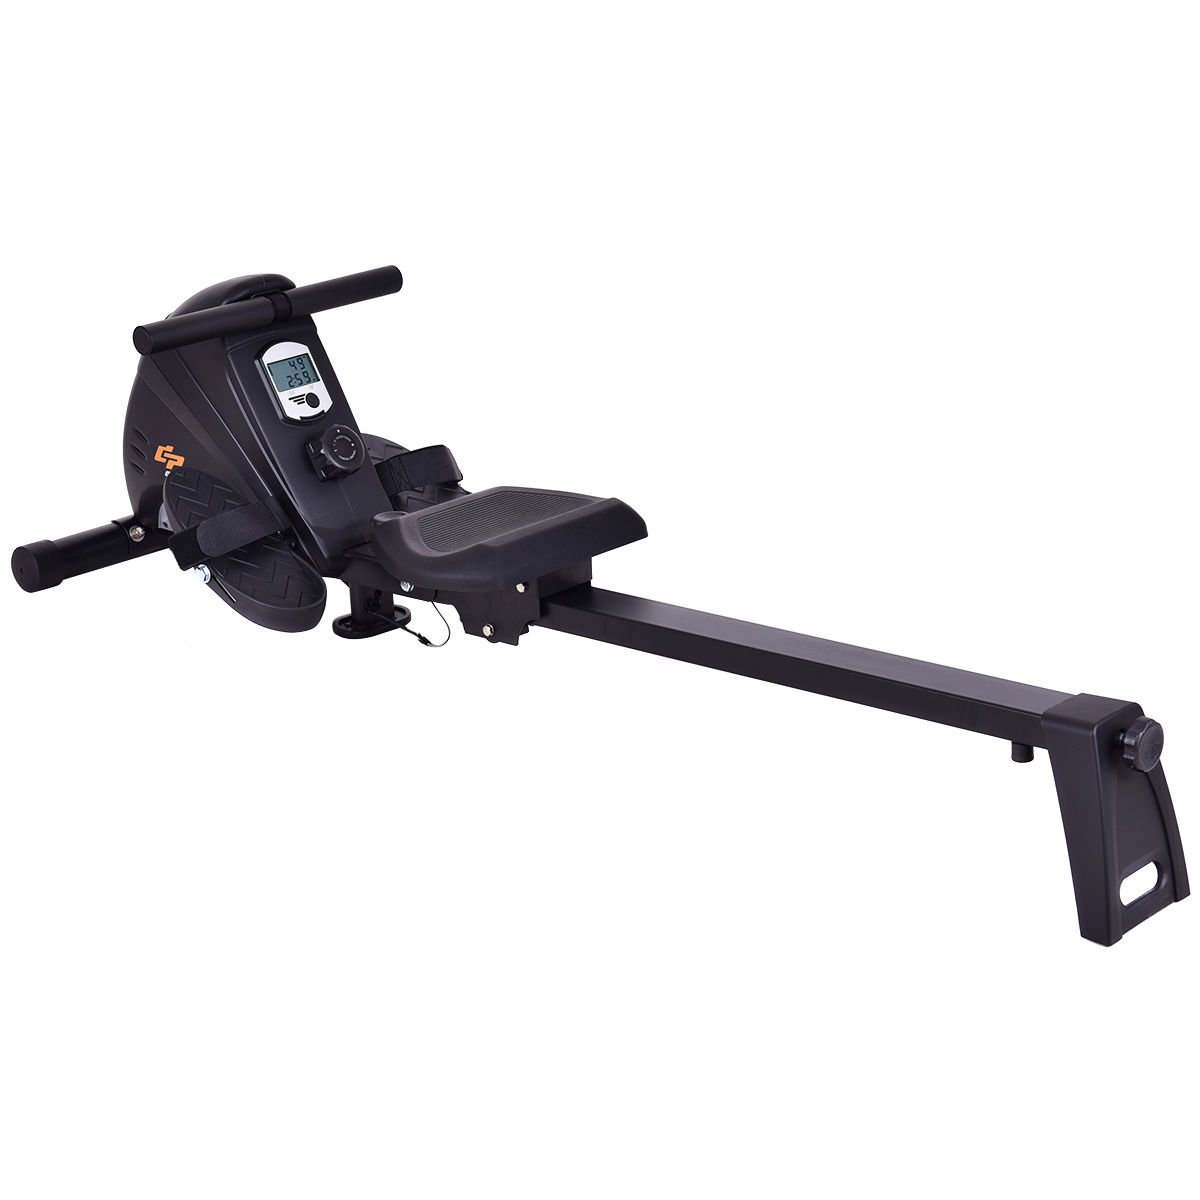 Goplus Magnetic Folding Rowing Machine Row Machine Rower Exercise Cardio Fitness Equipment W/ LCD Monitor by Goplus